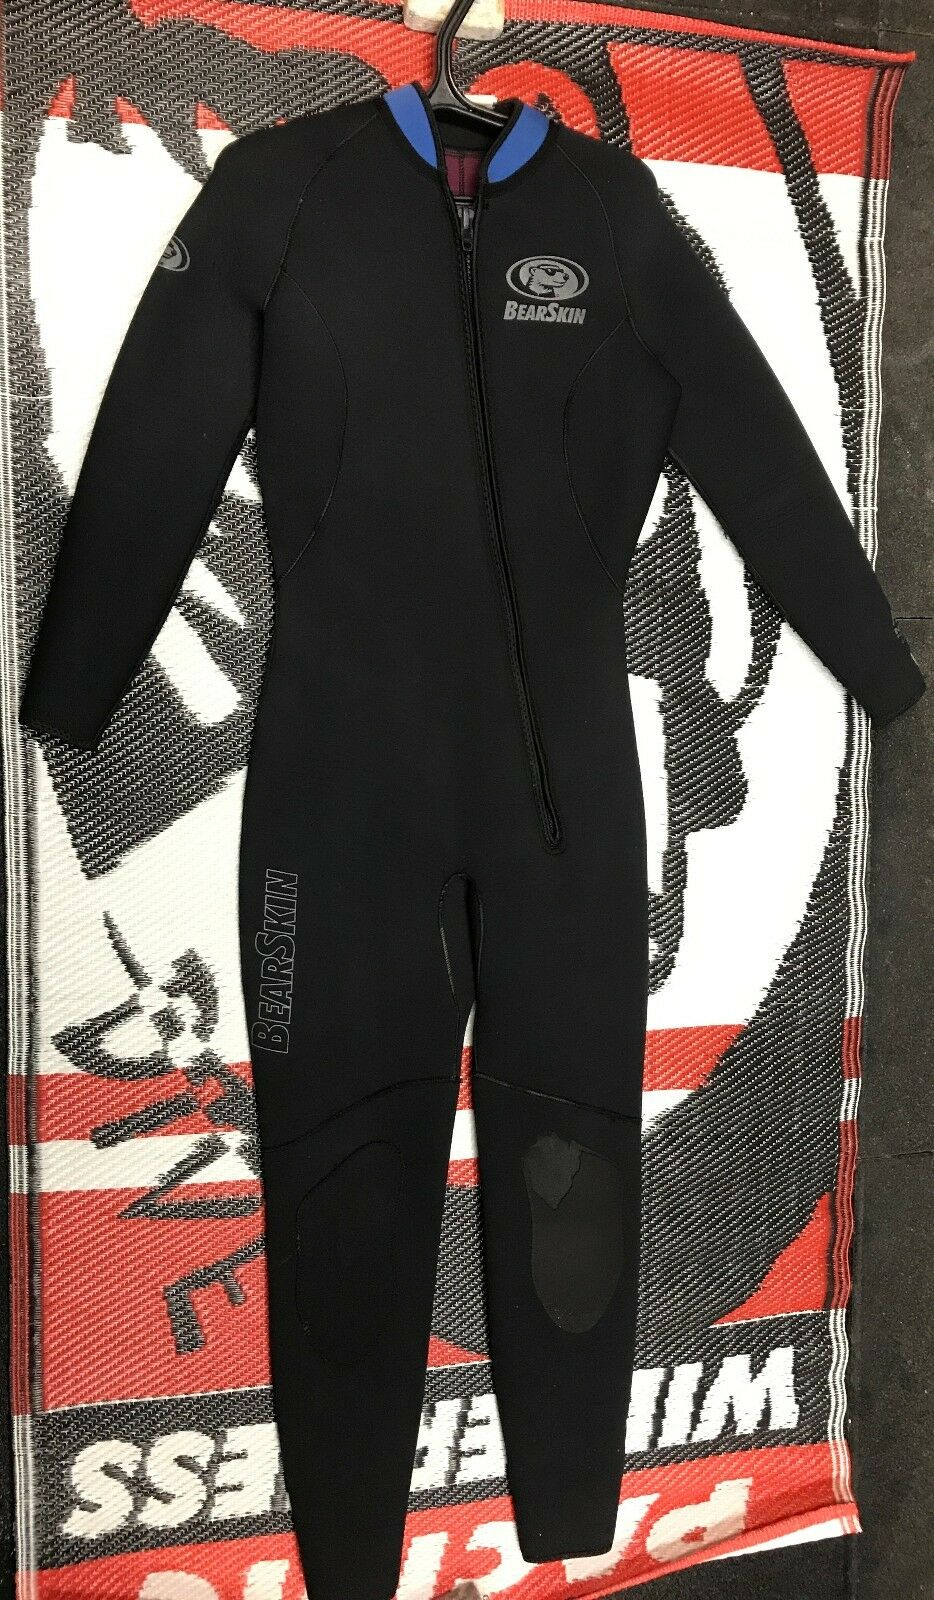 USED Women's Bearskin  6.5 mm Wetsuit  good quality